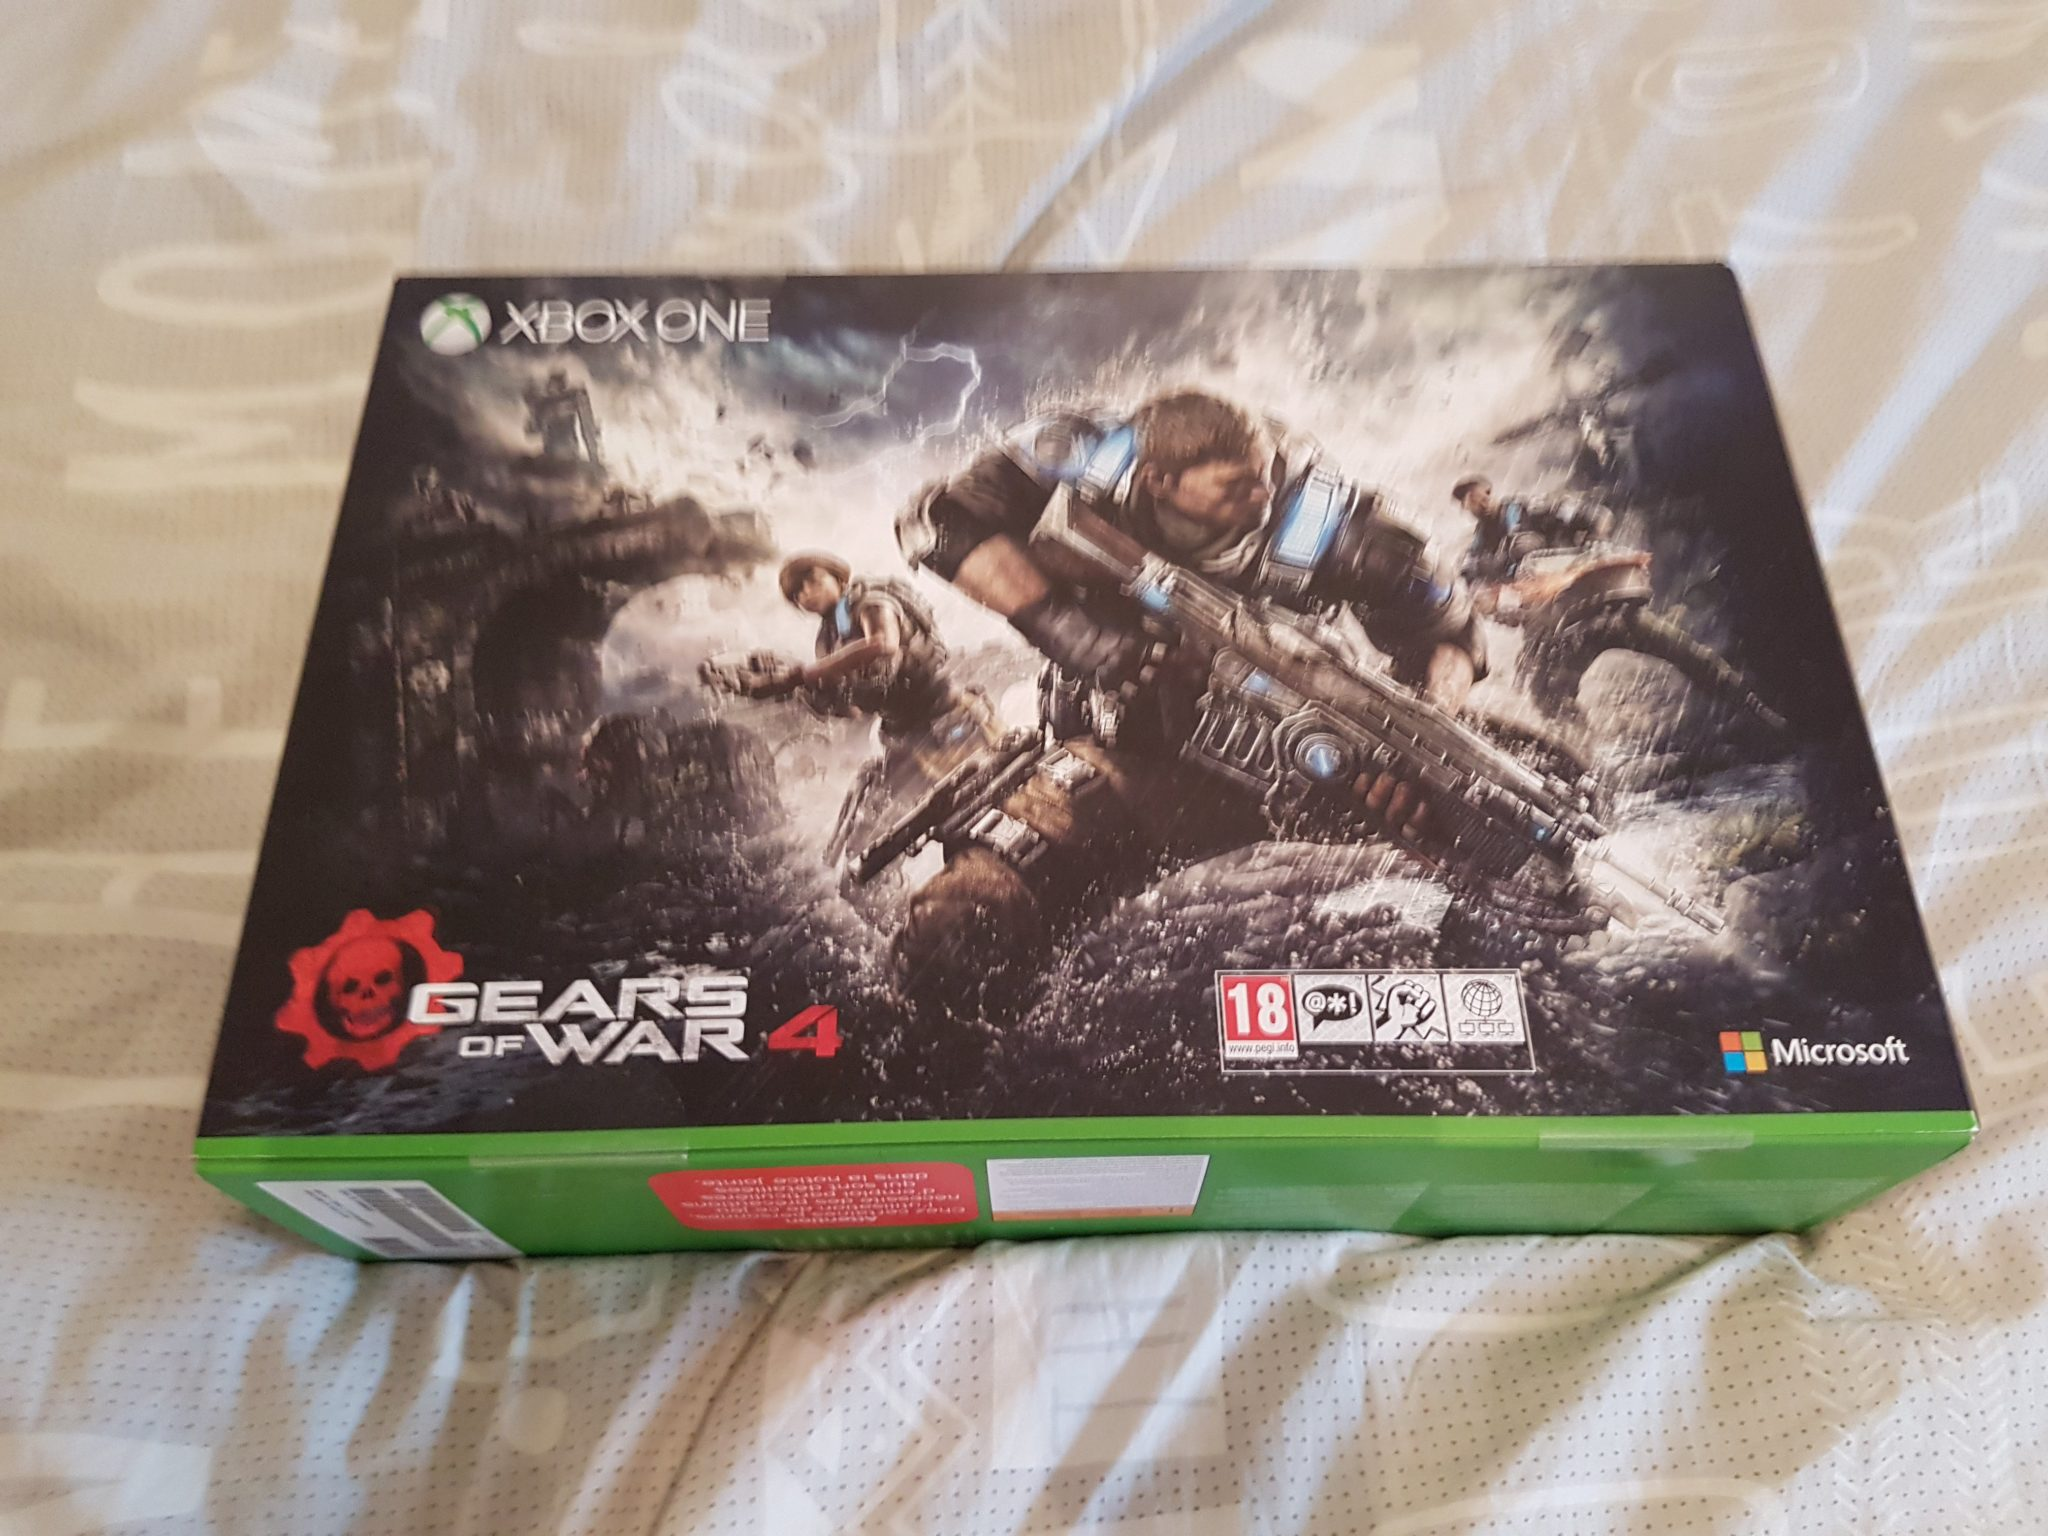 Gears of war 4 xbox one s box